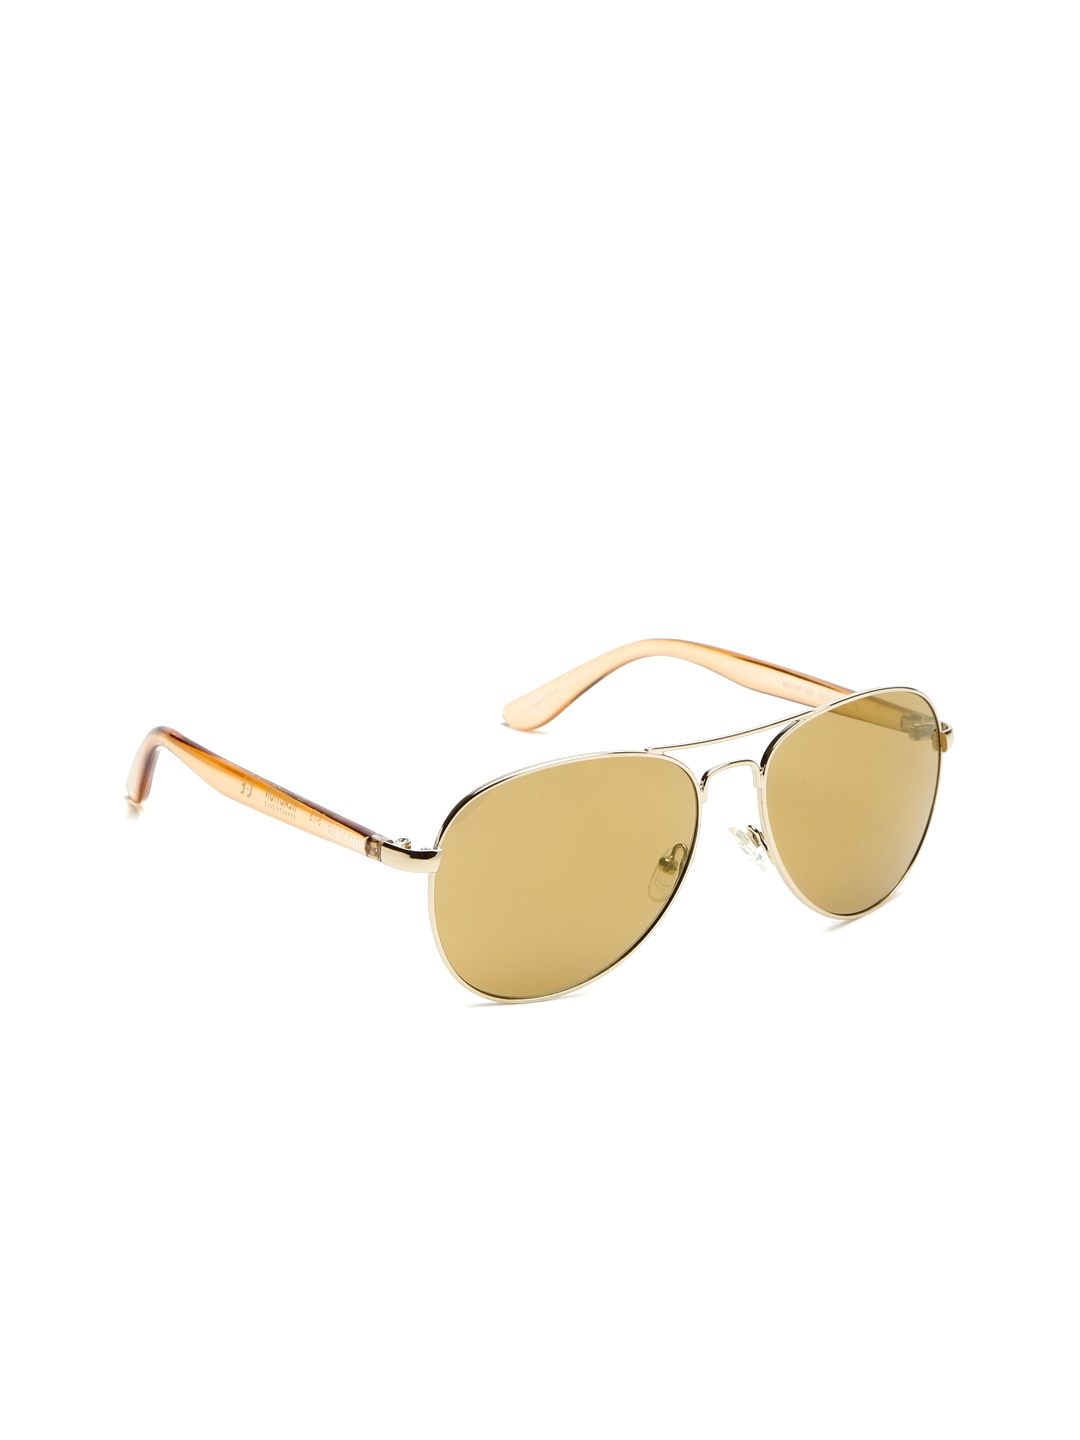 ba6628469c929 Buy Kenneth Cole Women Aviator Sunglasses KC1278 58 32F - Sunglasses ...